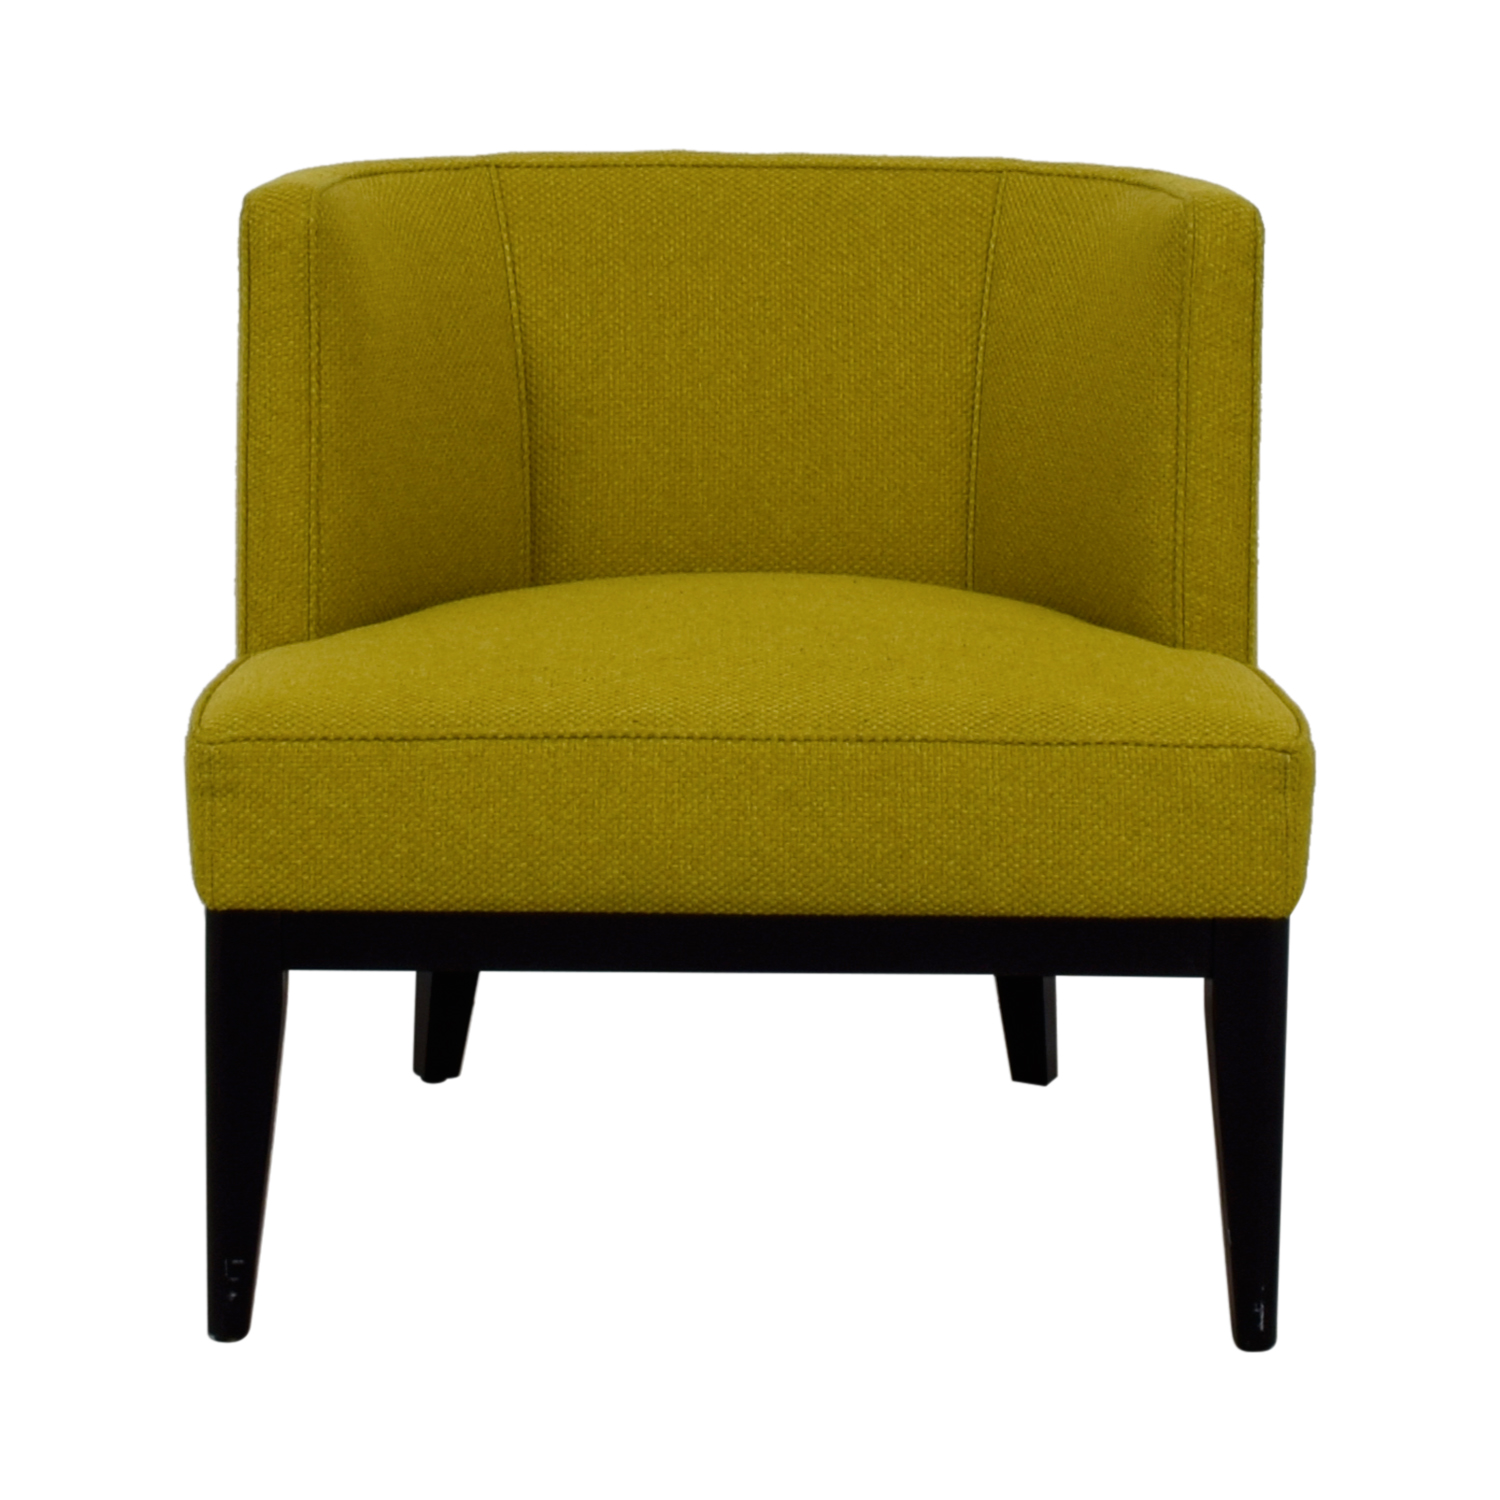 Crate & Barrel Crate & Barrel Grayson Citron Armchair second hand